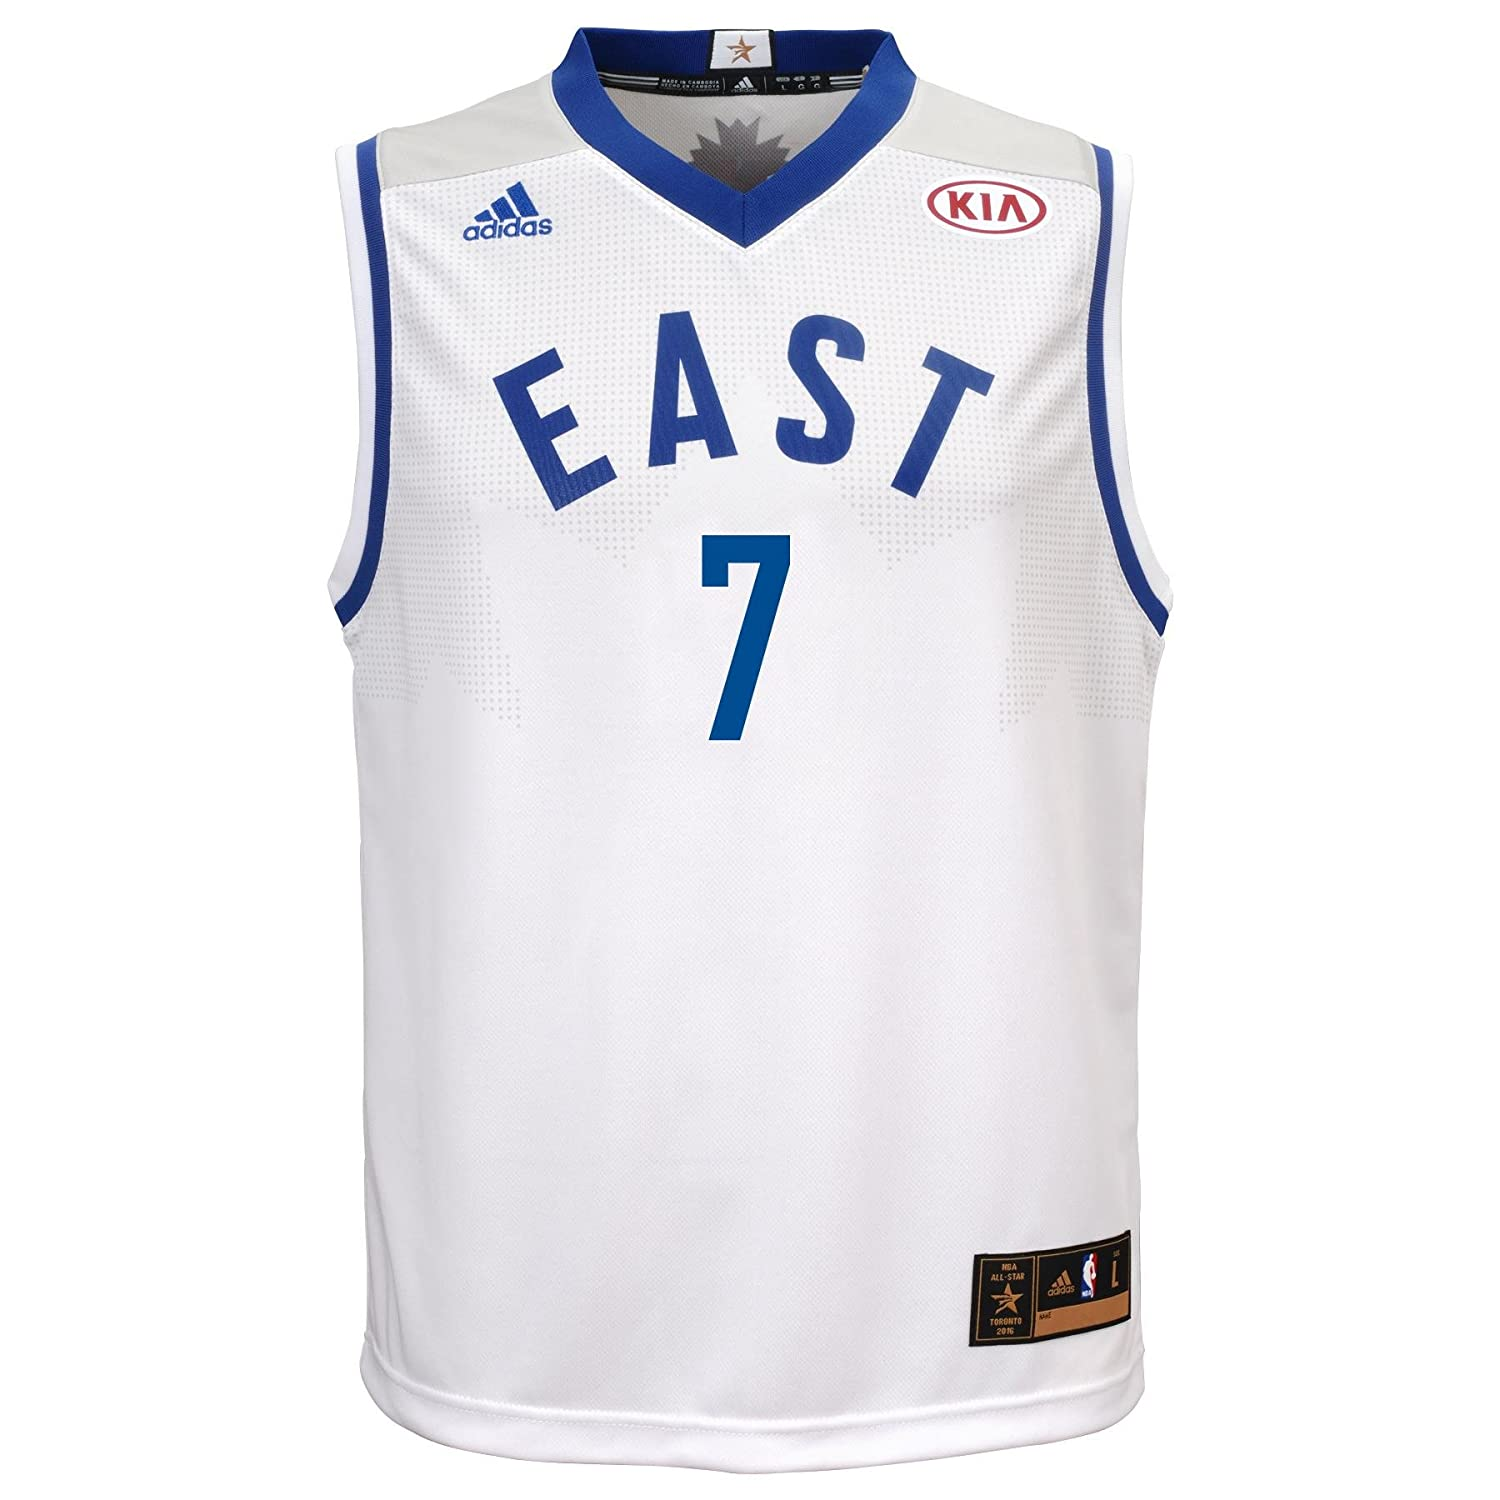 new arrivals a8f81 ce6c4 east all star jersey